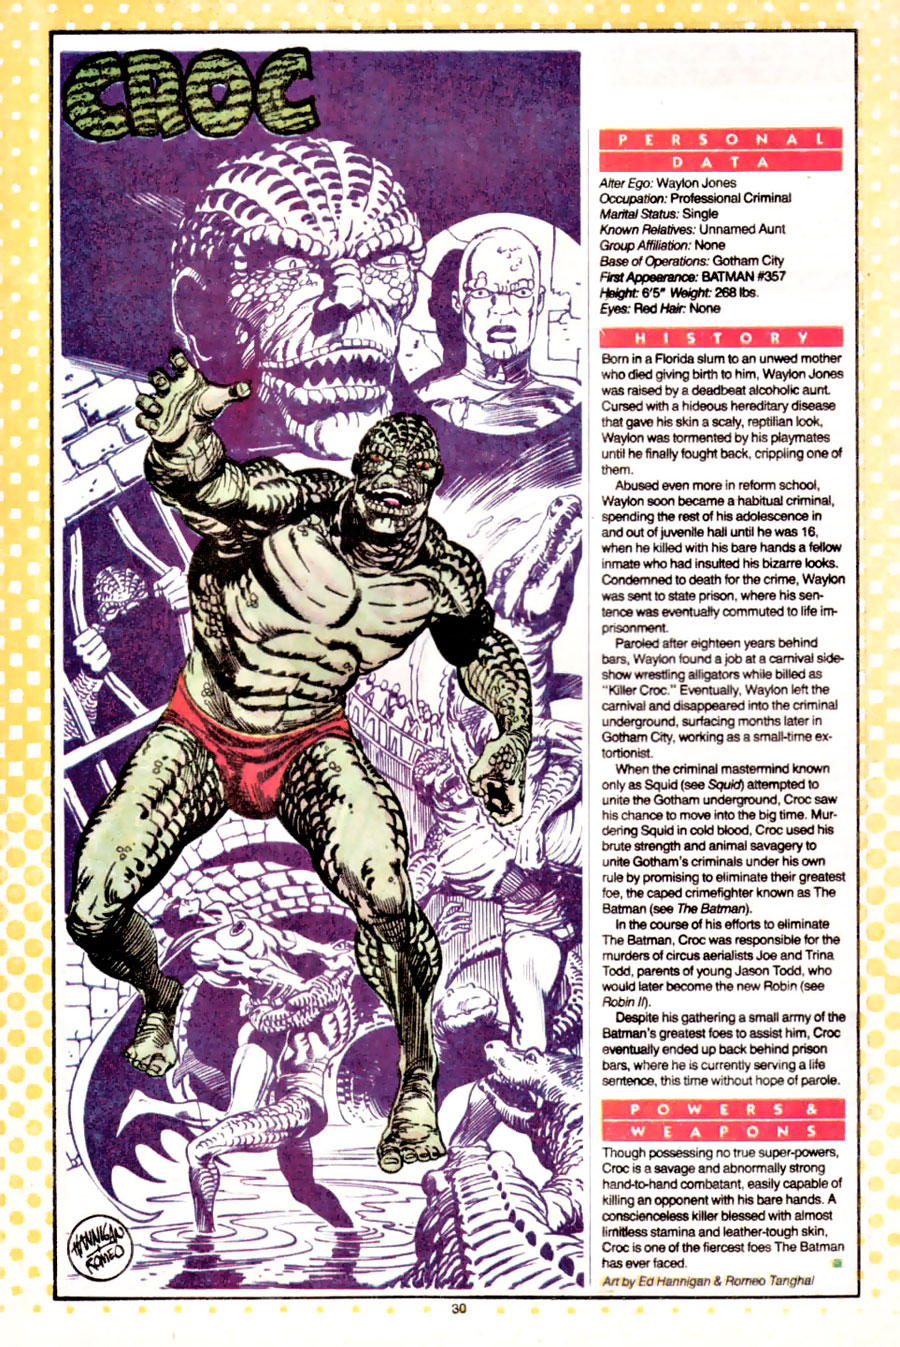 Killer Croc from Who's Who created by Gerry Conway and drawn by Ed Hannigan and Romeo Tanghal